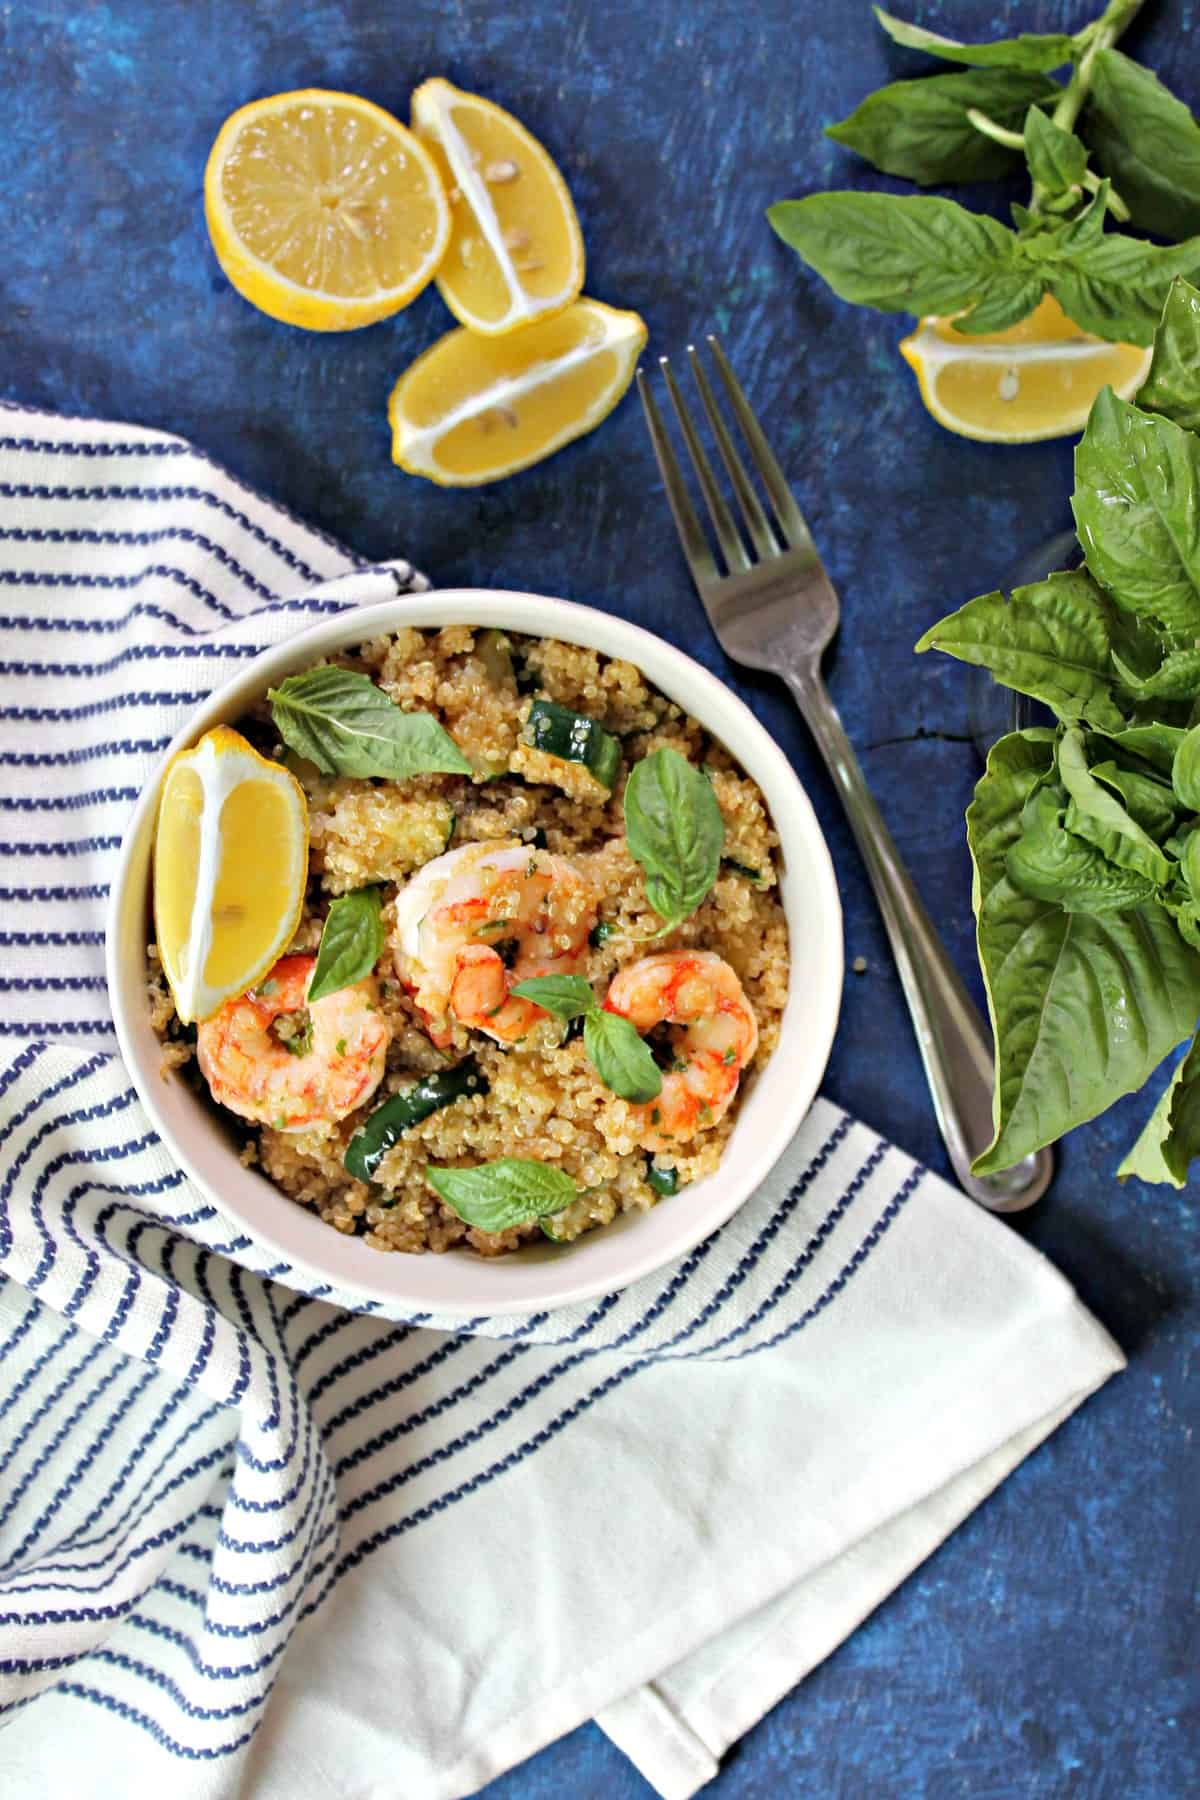 Lemon Basil Shrimp over a bed of quinoa is a deliciously simple and healthy lunch or dinner that's great for busy days